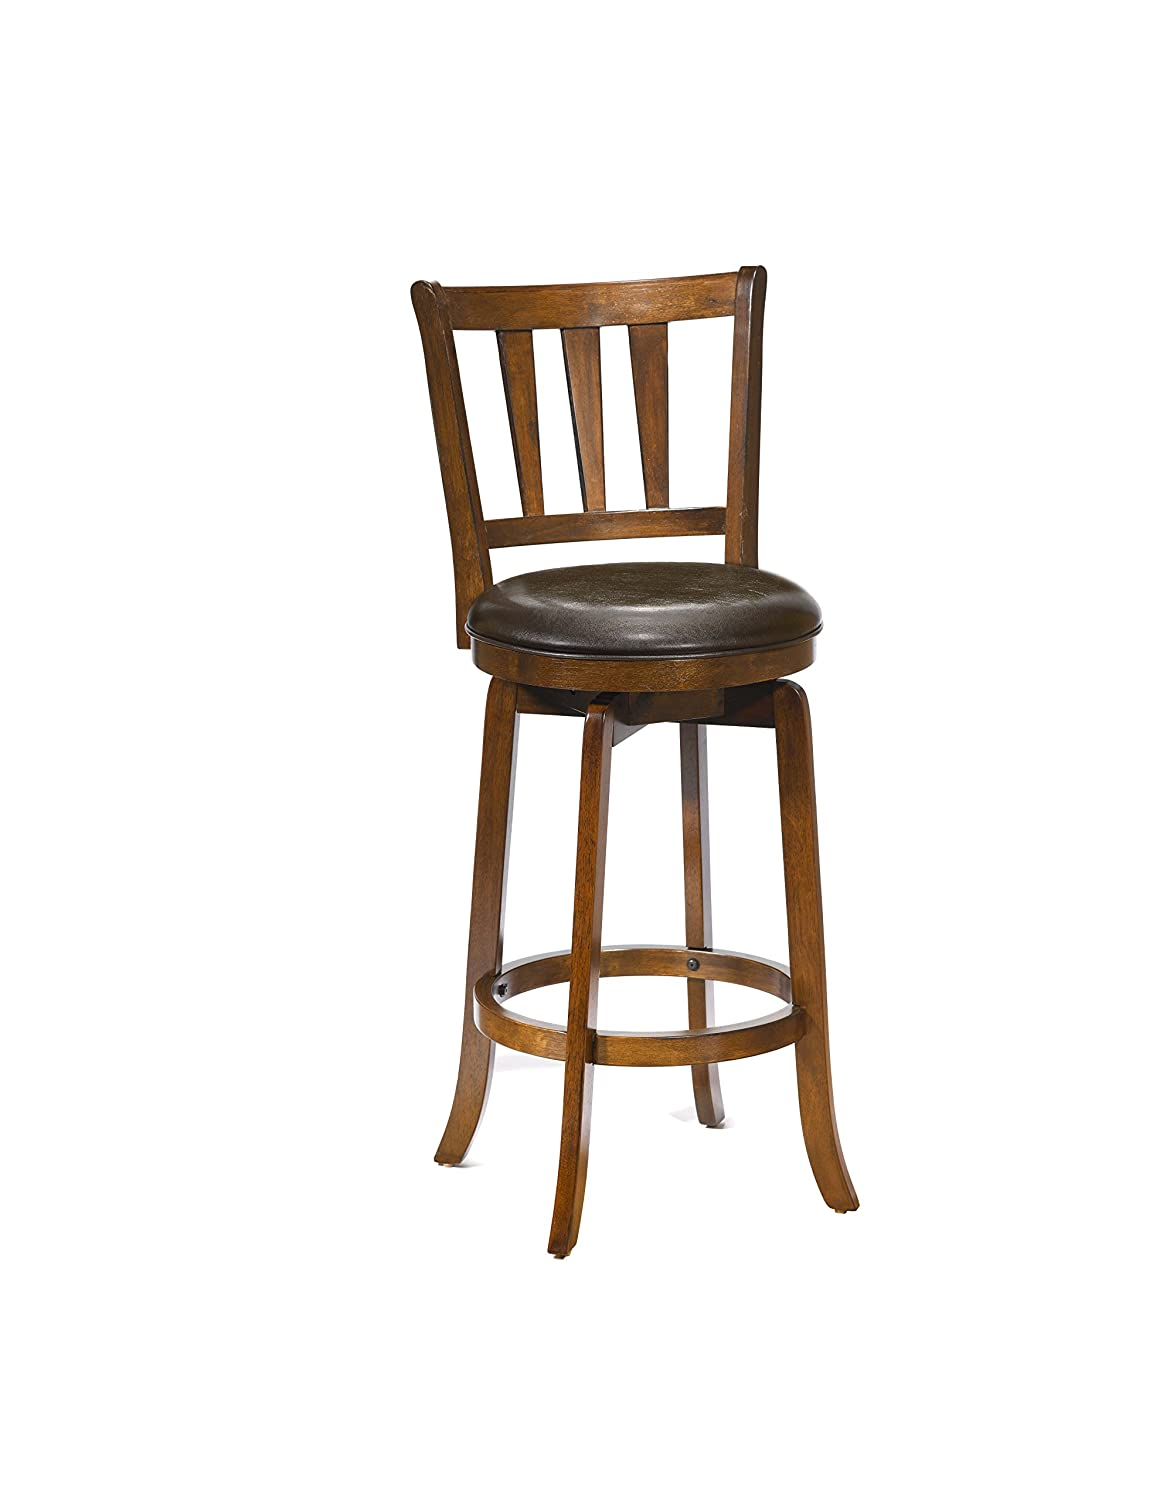 Hillsdale Presque Isle Swivel Bar Stool, Brown 4478-831